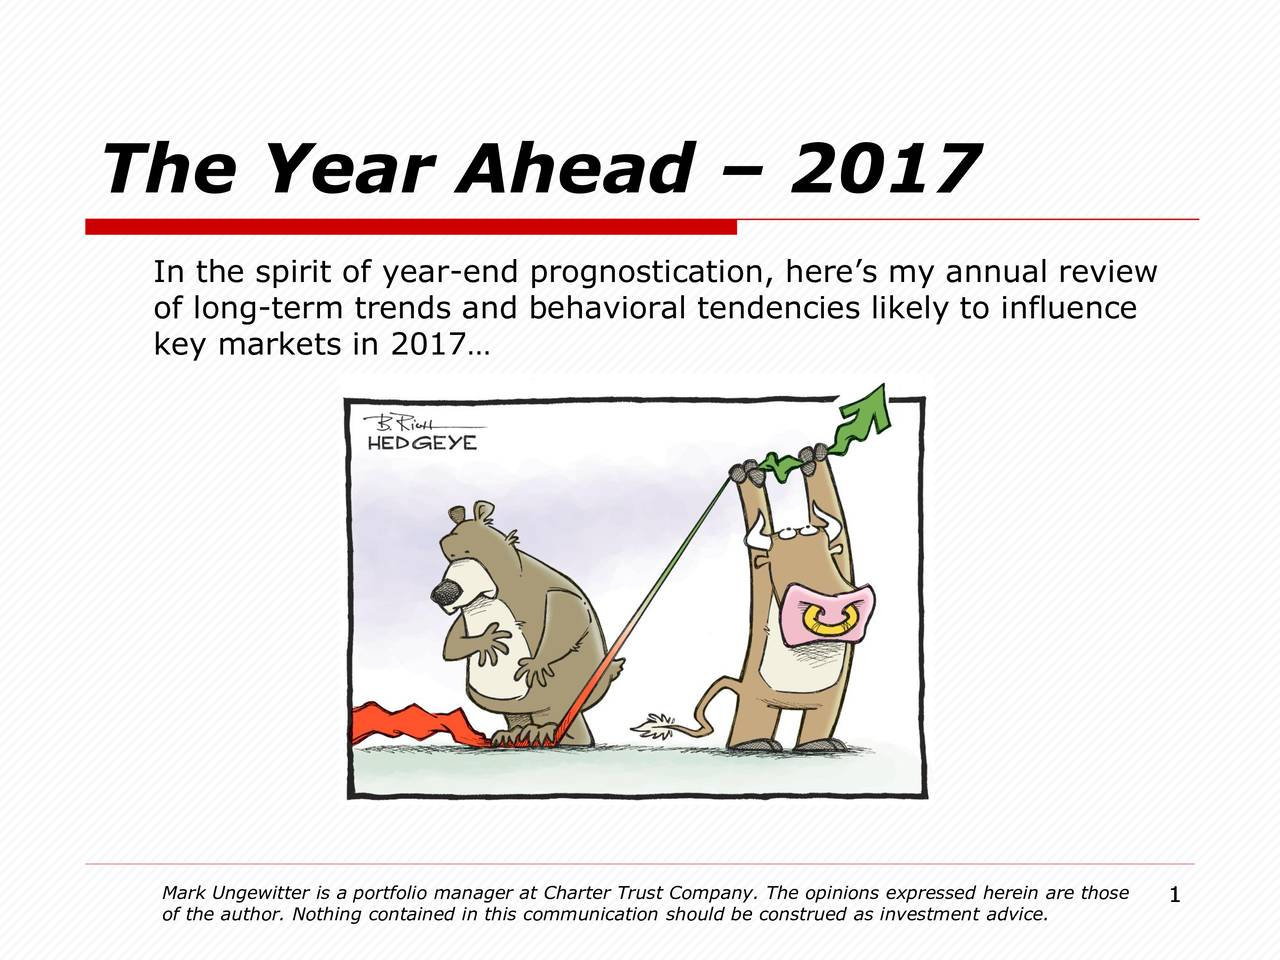 In the spirit of year-end prognostication, heres my annual review of long-term trends and behavioral tendencies likely to influence key markets in 2017 Mark Ungewitter is a portfolio manager at Charter Trust Company. 1he opinions expressed herein are those of the author. Nothing contained in this communication should be construed as investment advice.